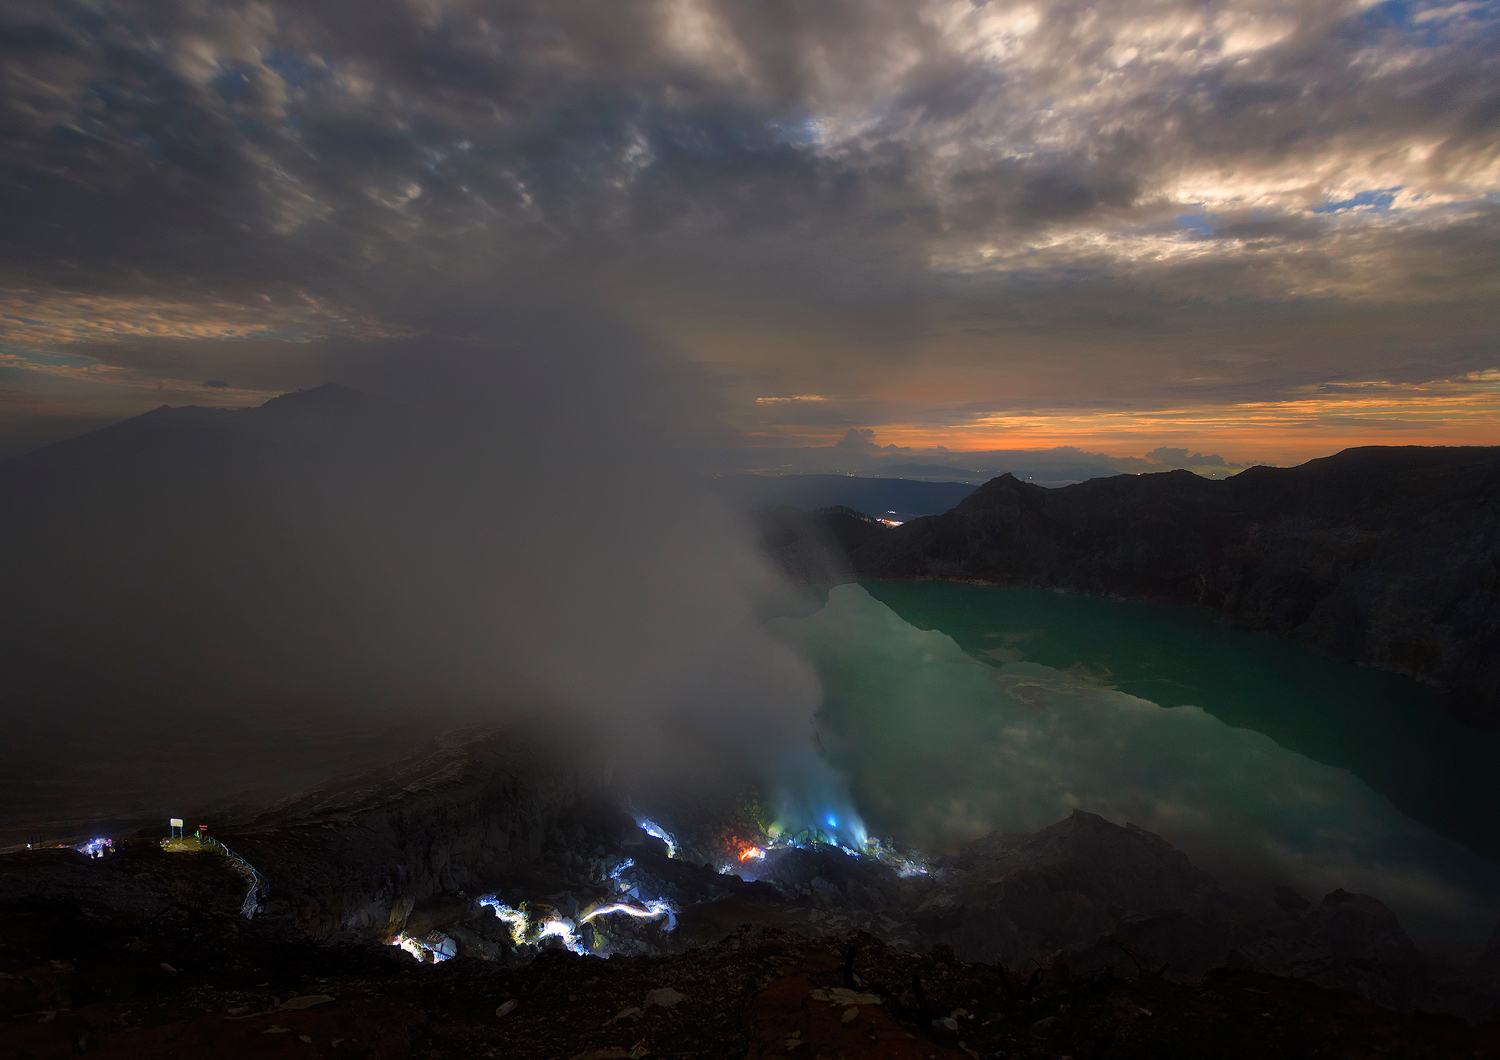 Blue Fire at Ijen